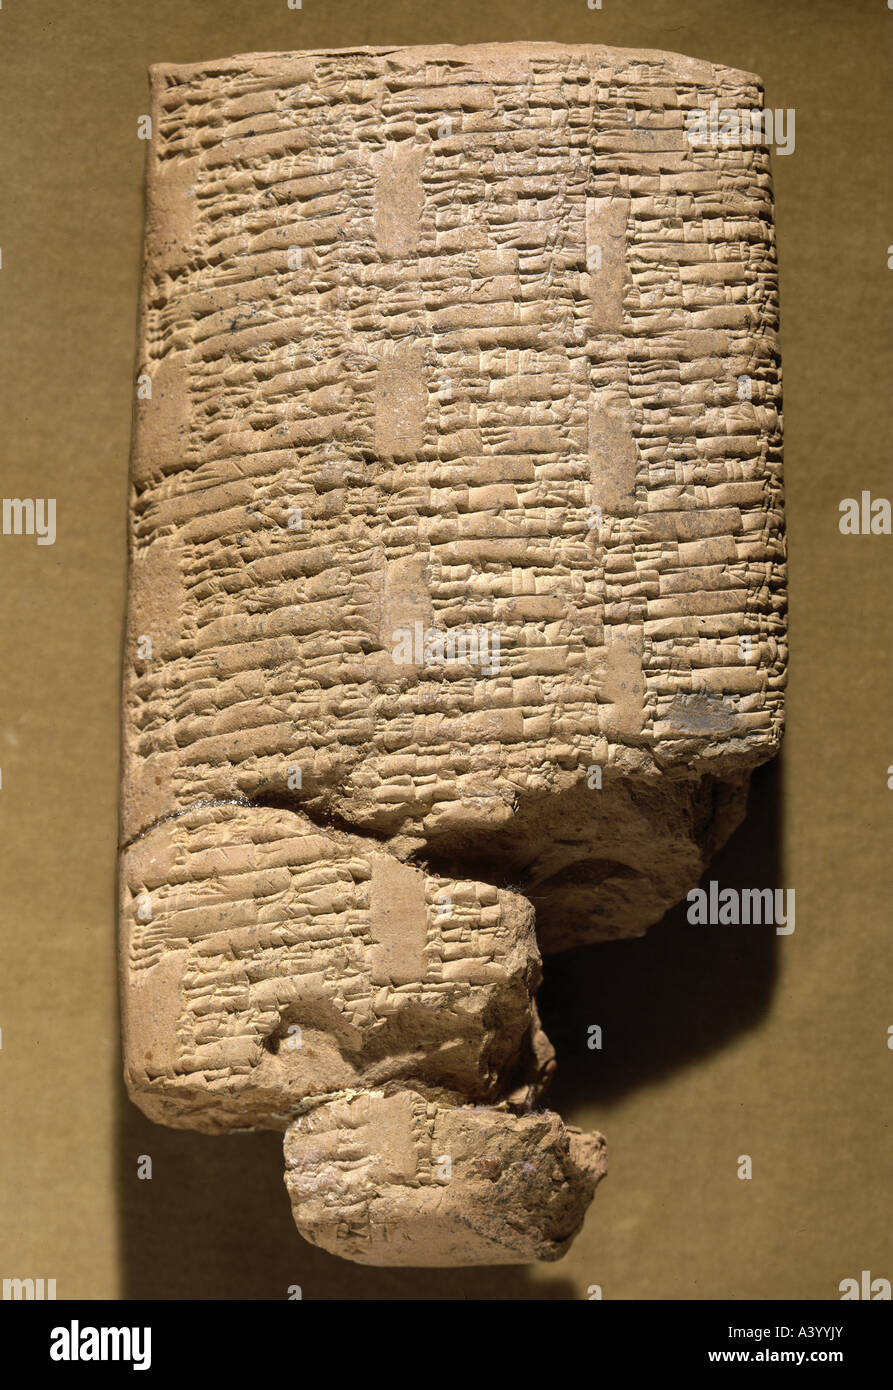 writing, script, cuneiform writing, Babylonian, clay tablet, document from the palace of Mari (Tell Hariri), list - Stock Image